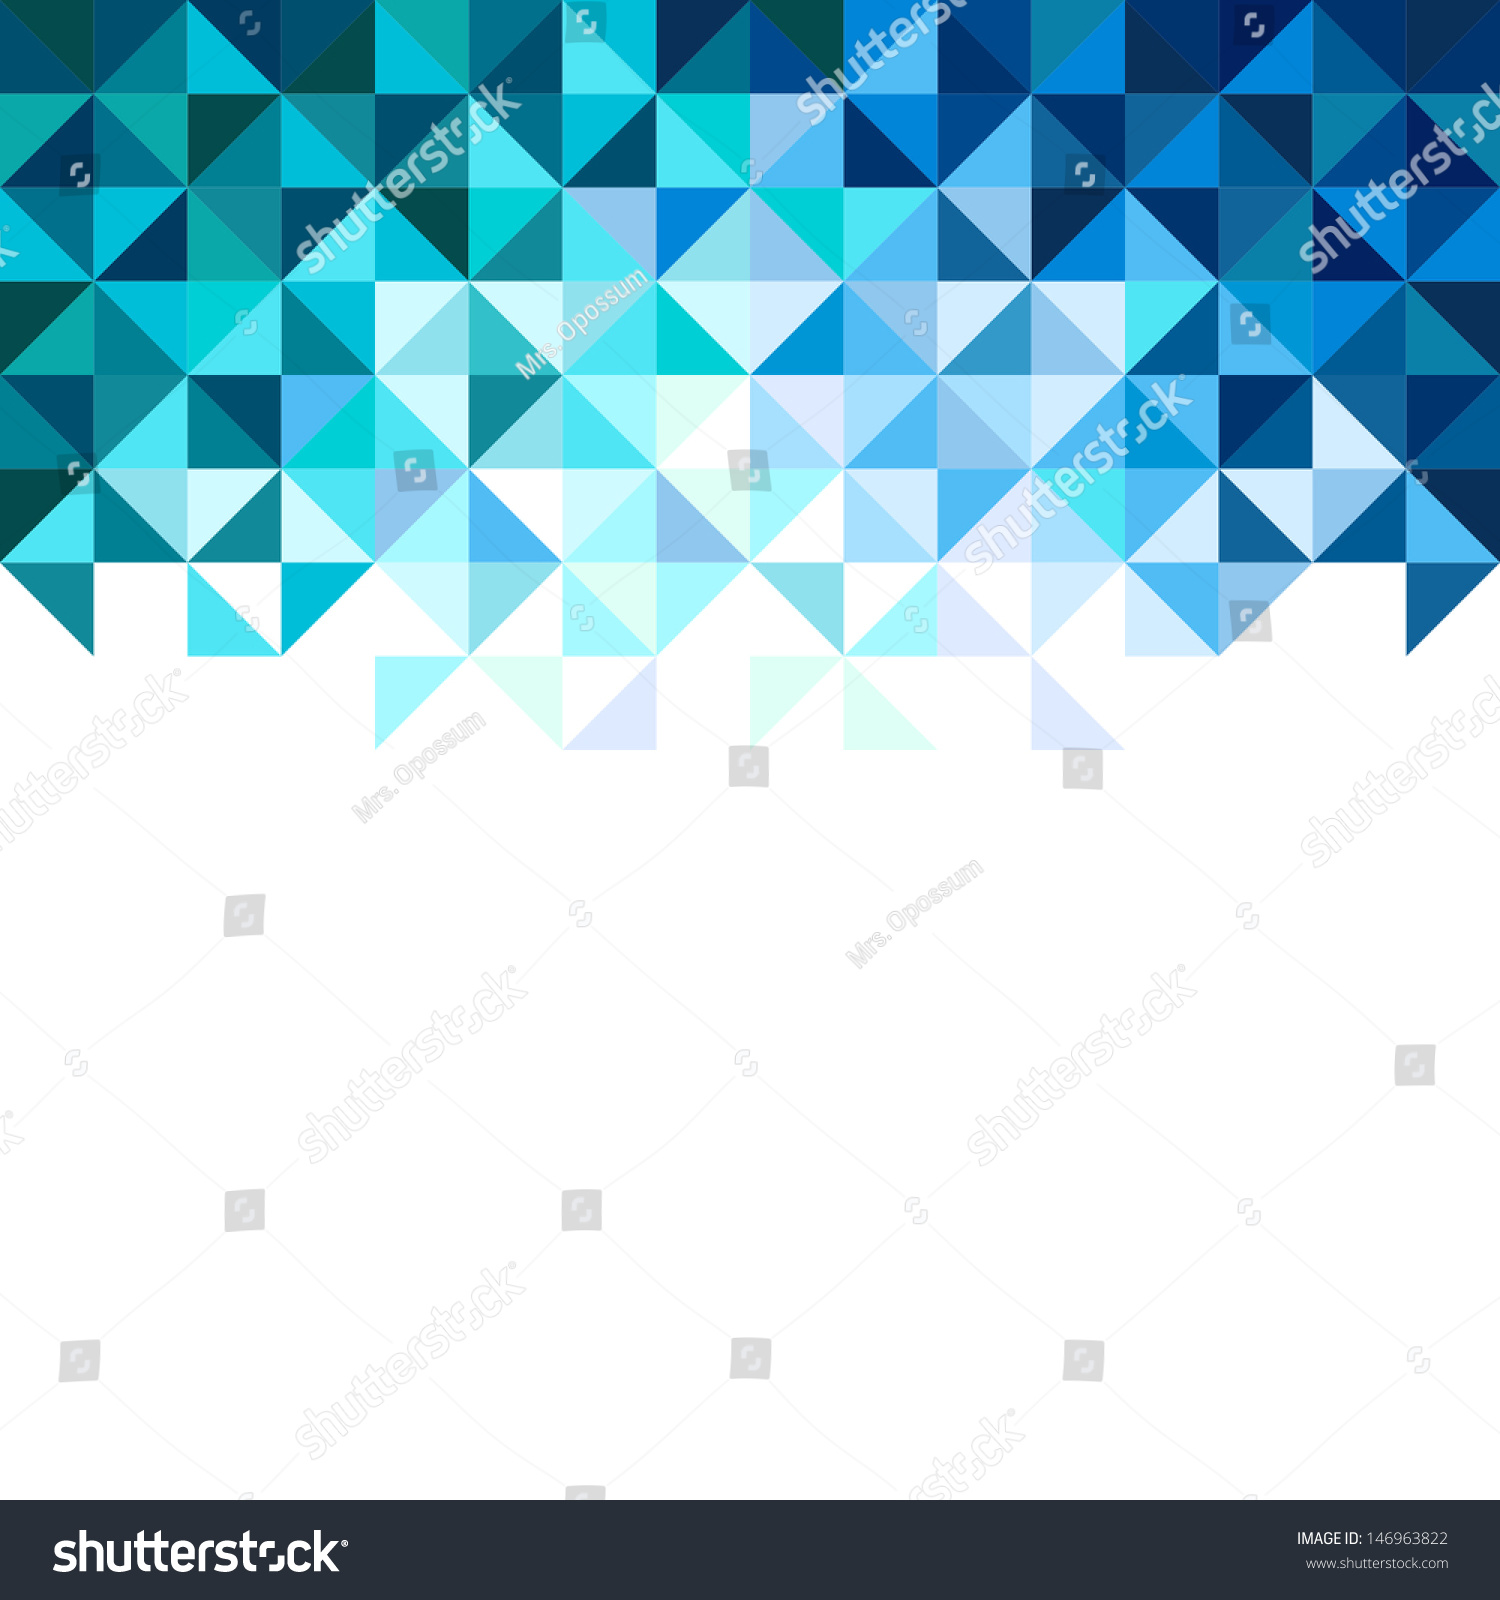 stock vector geometric background - photo #37